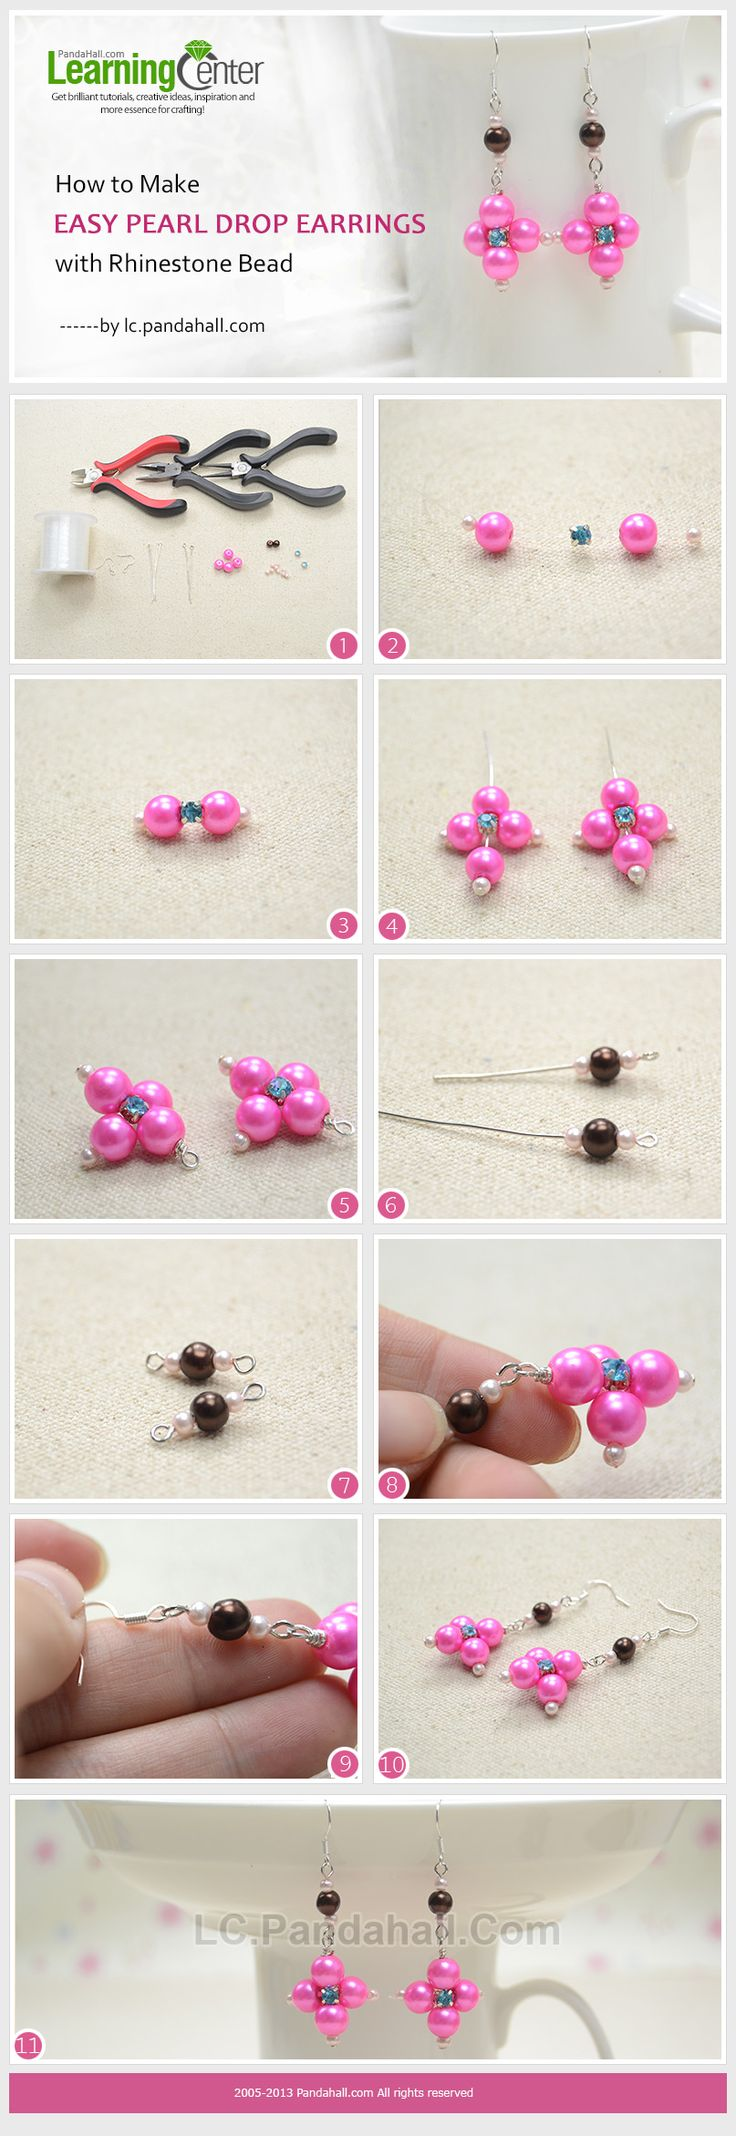 How to Make Easy Pearl Drop Earrings with Rhinestone Bead